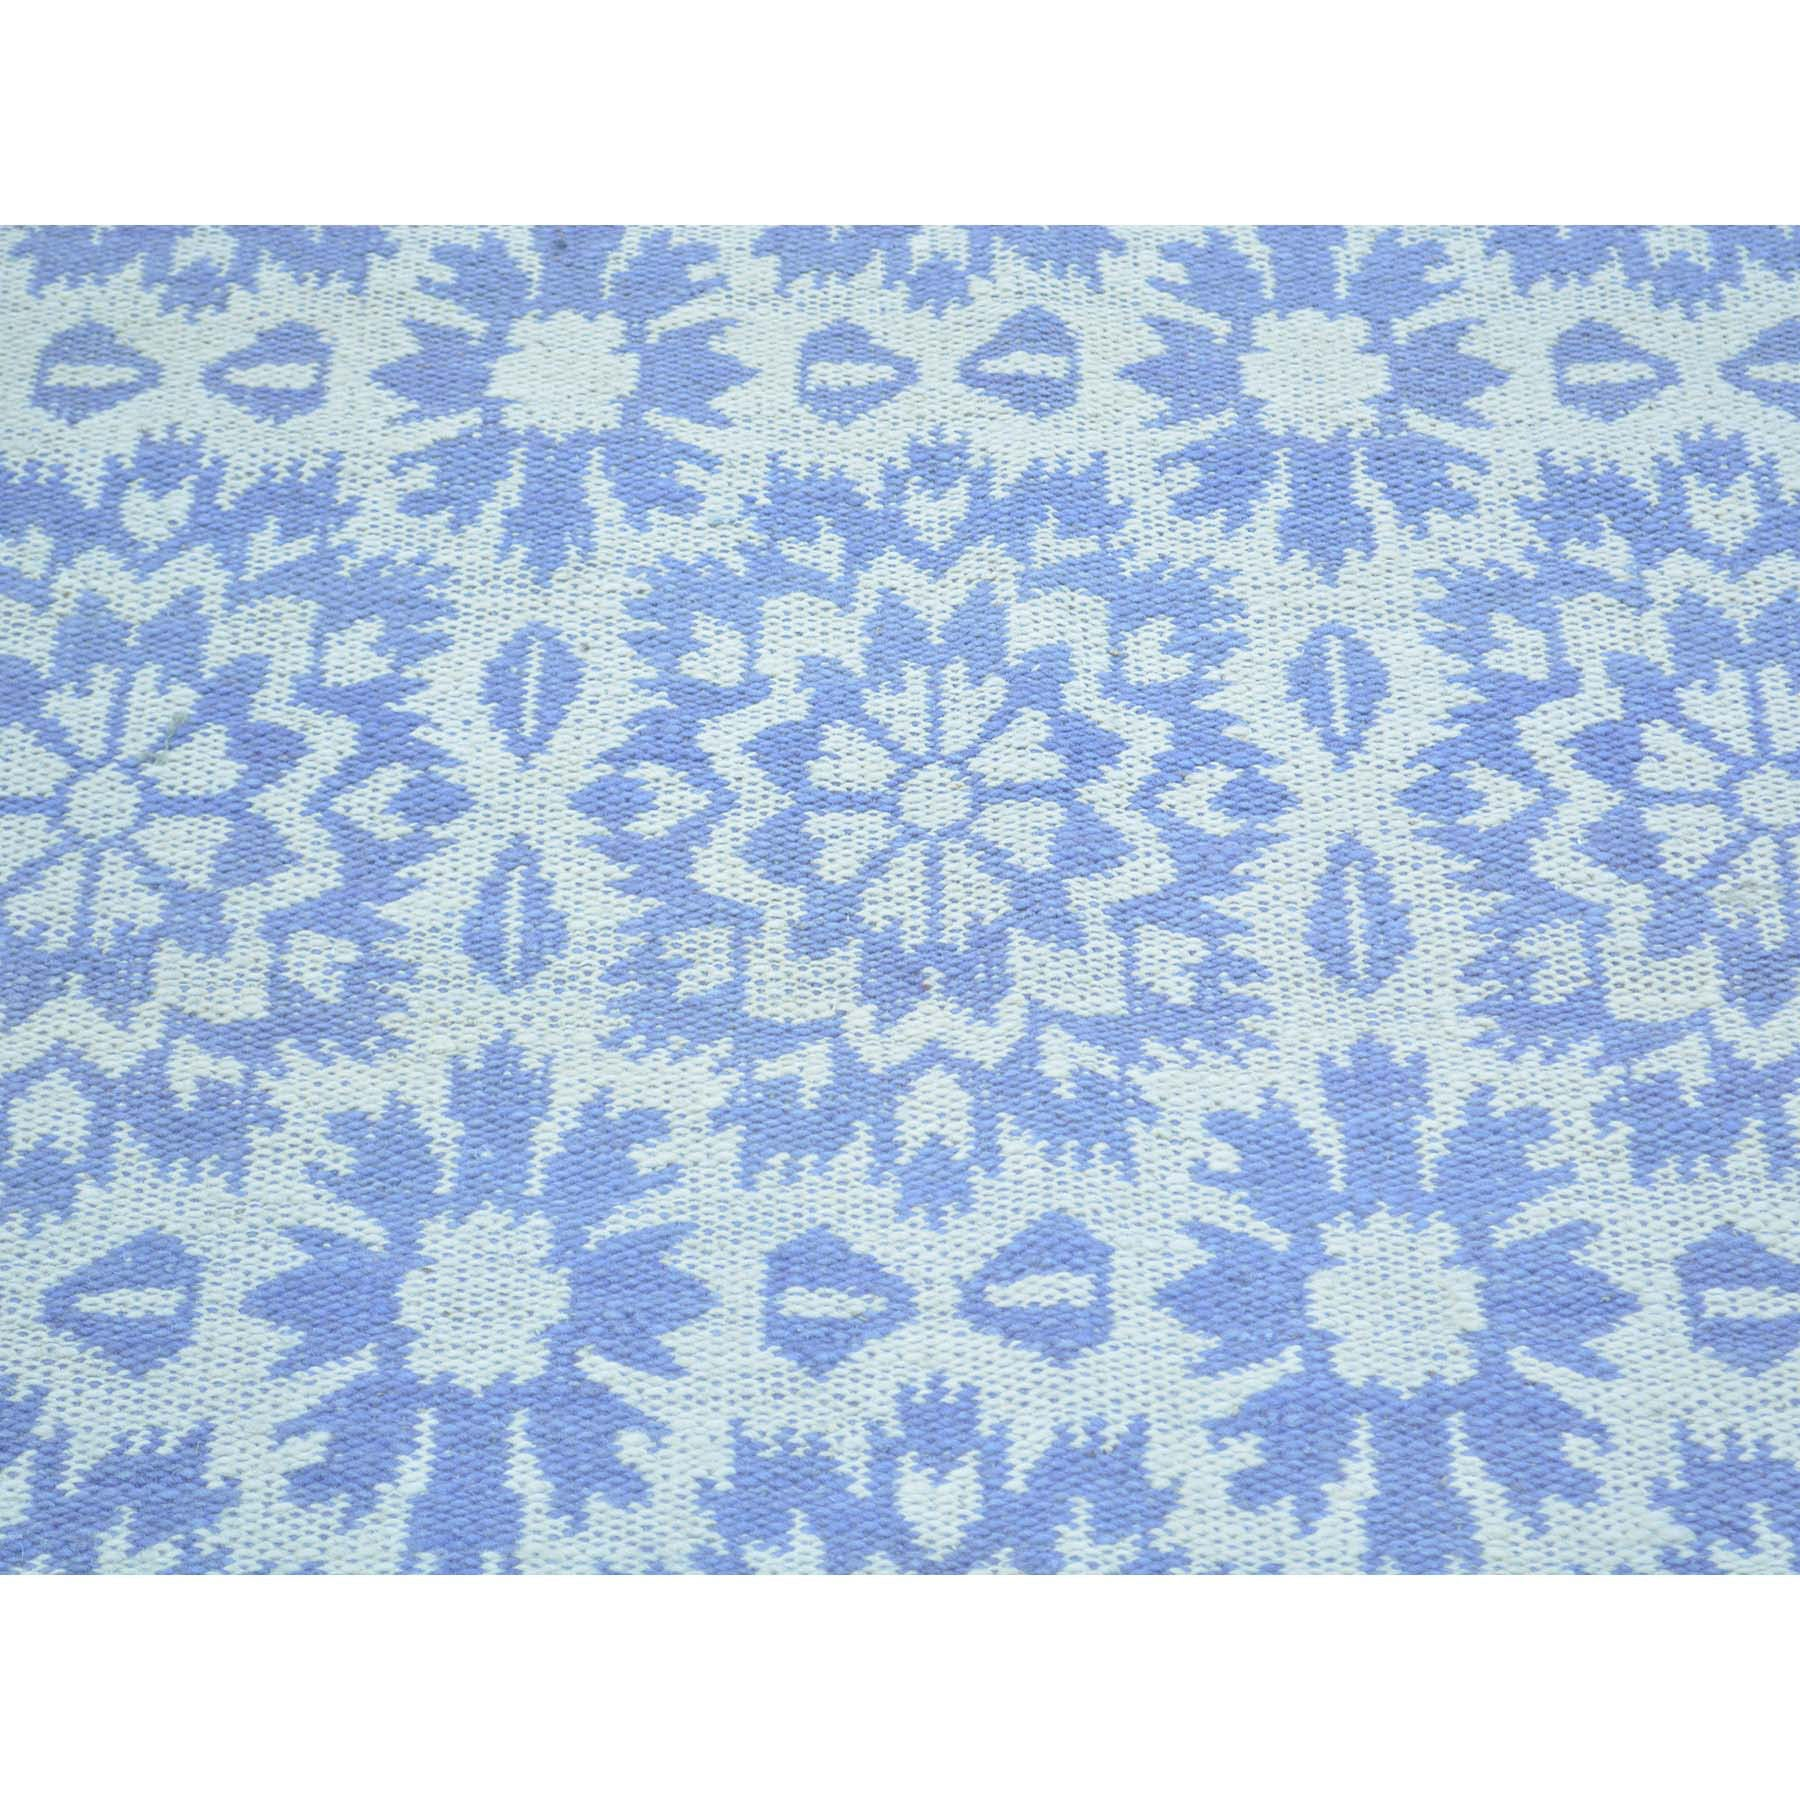 "Handmade Flat Weave Rectangle Rug > Design# SH29835 > Size: 3'-7"" x 5'-4"" [ONLINE ONLY]"